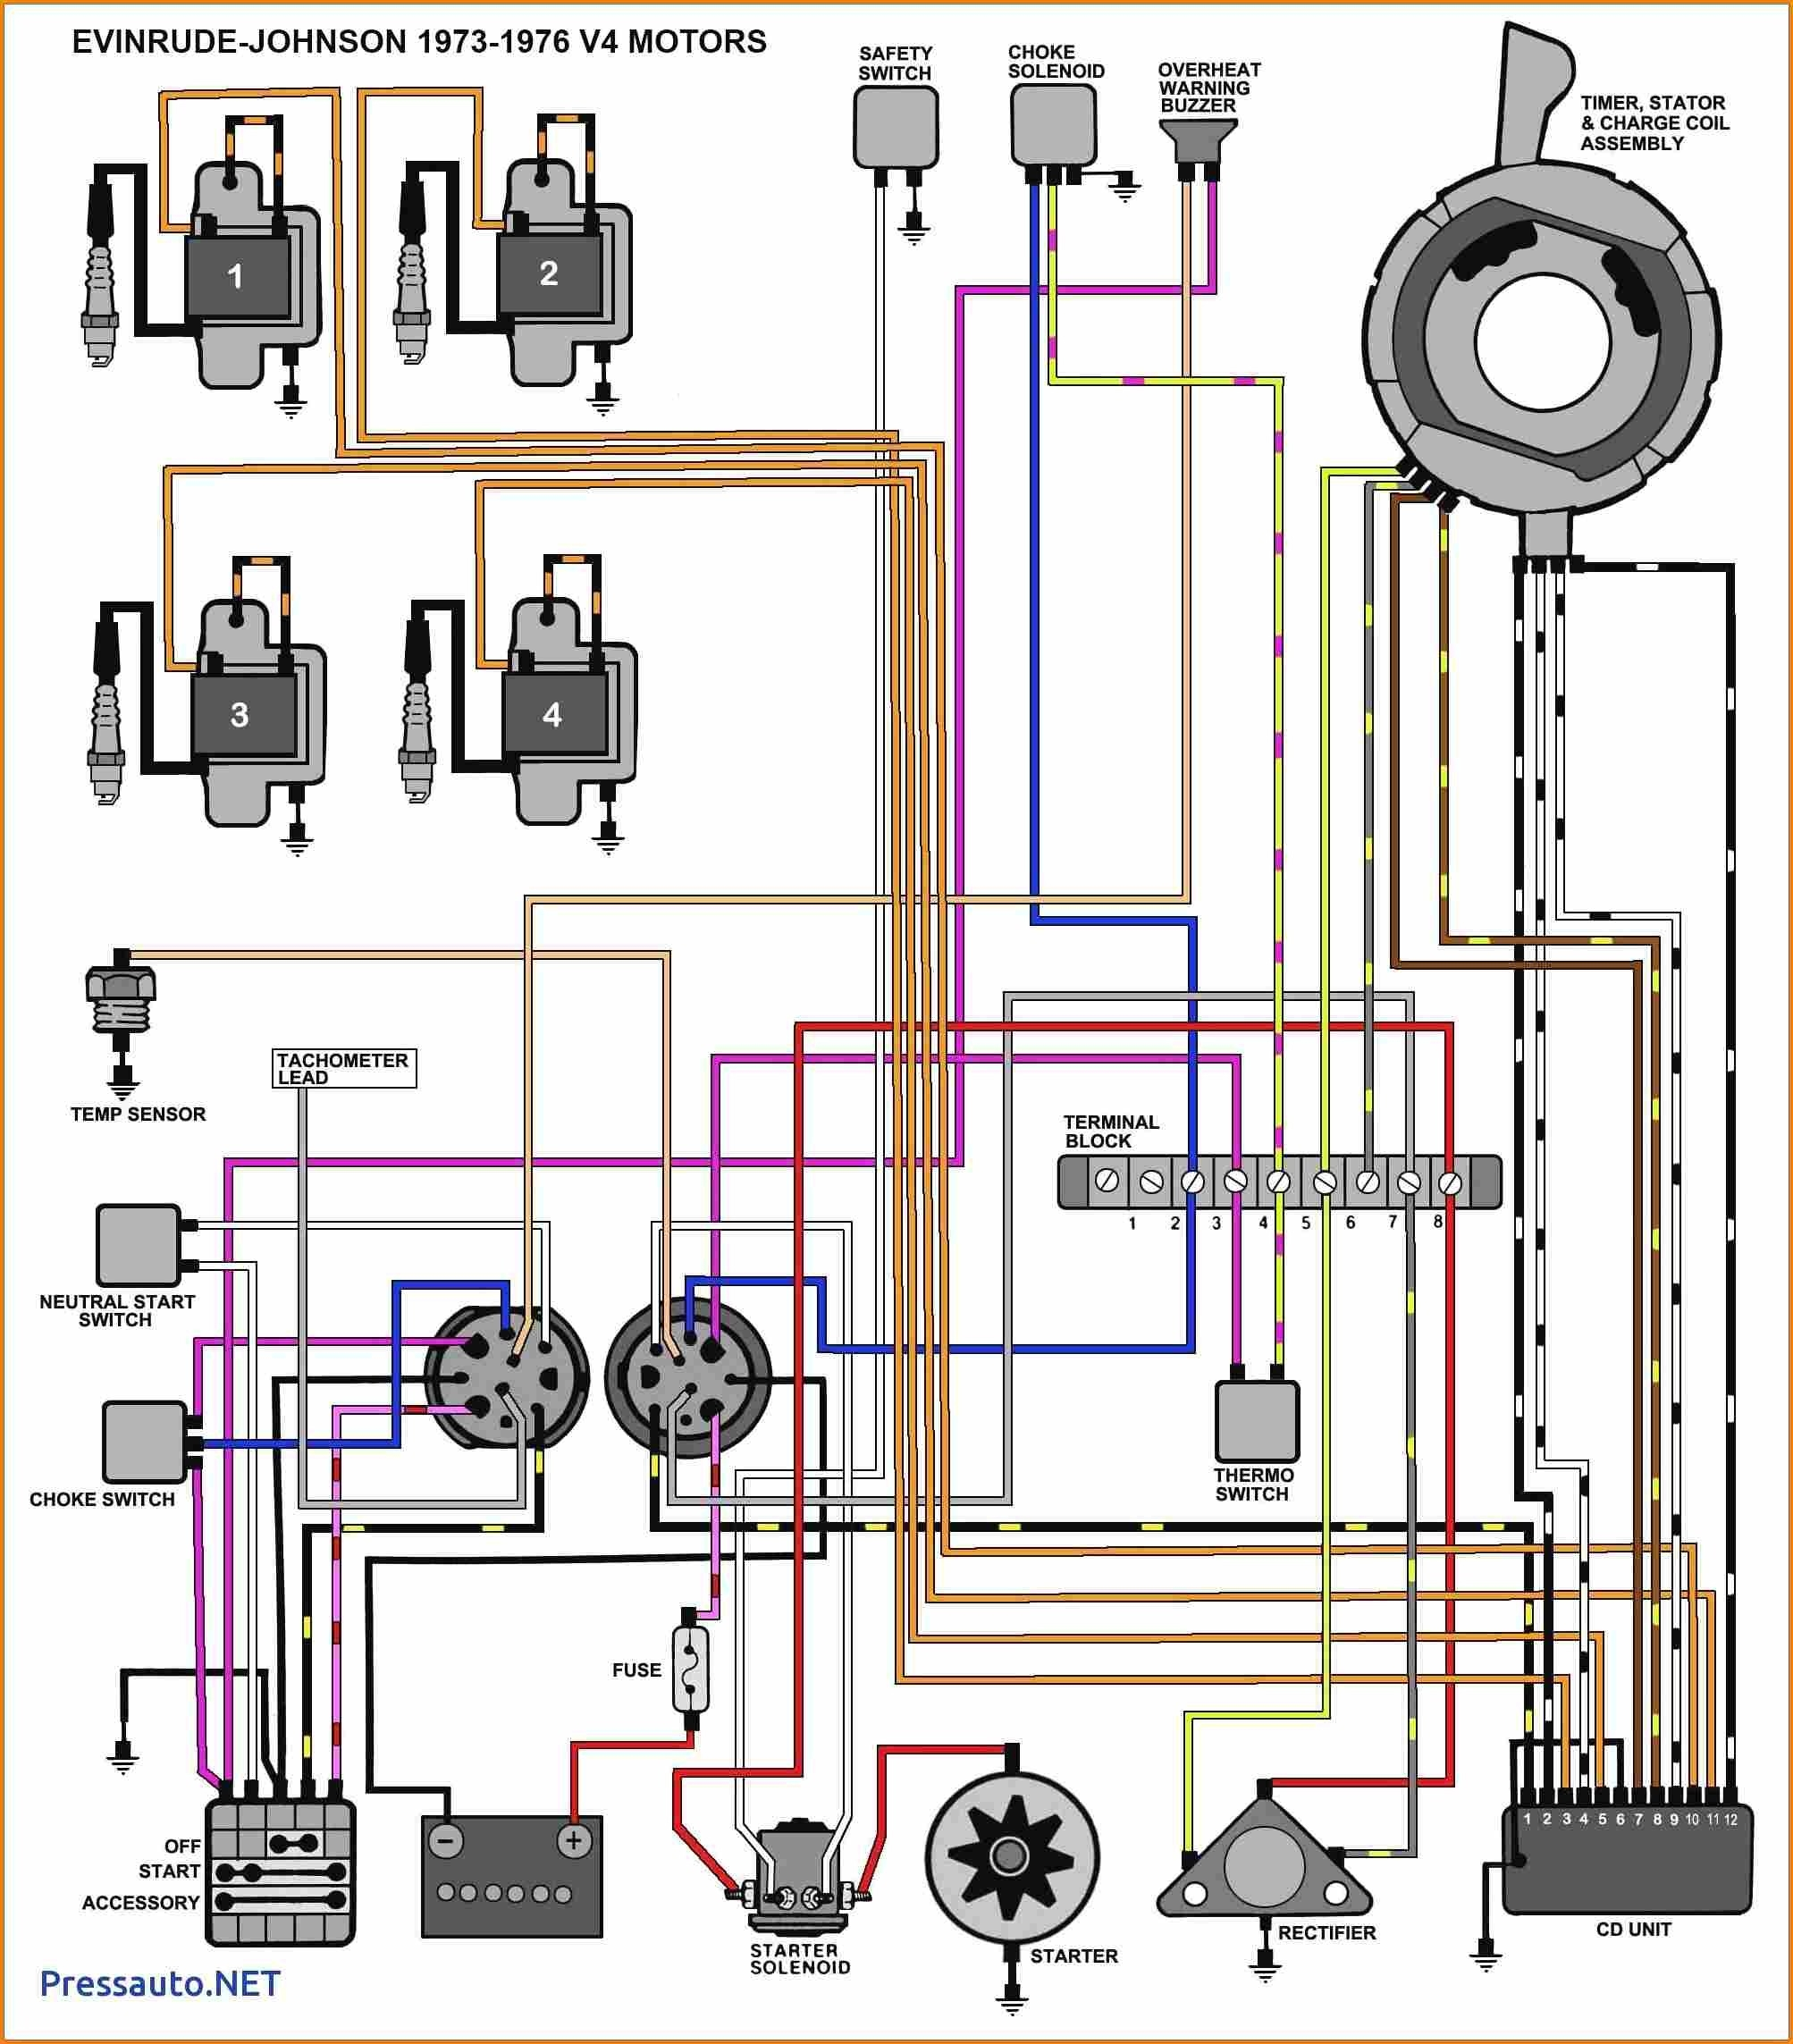 Omc Solenoid Wiring Diagram - Wiring Diagram Content on